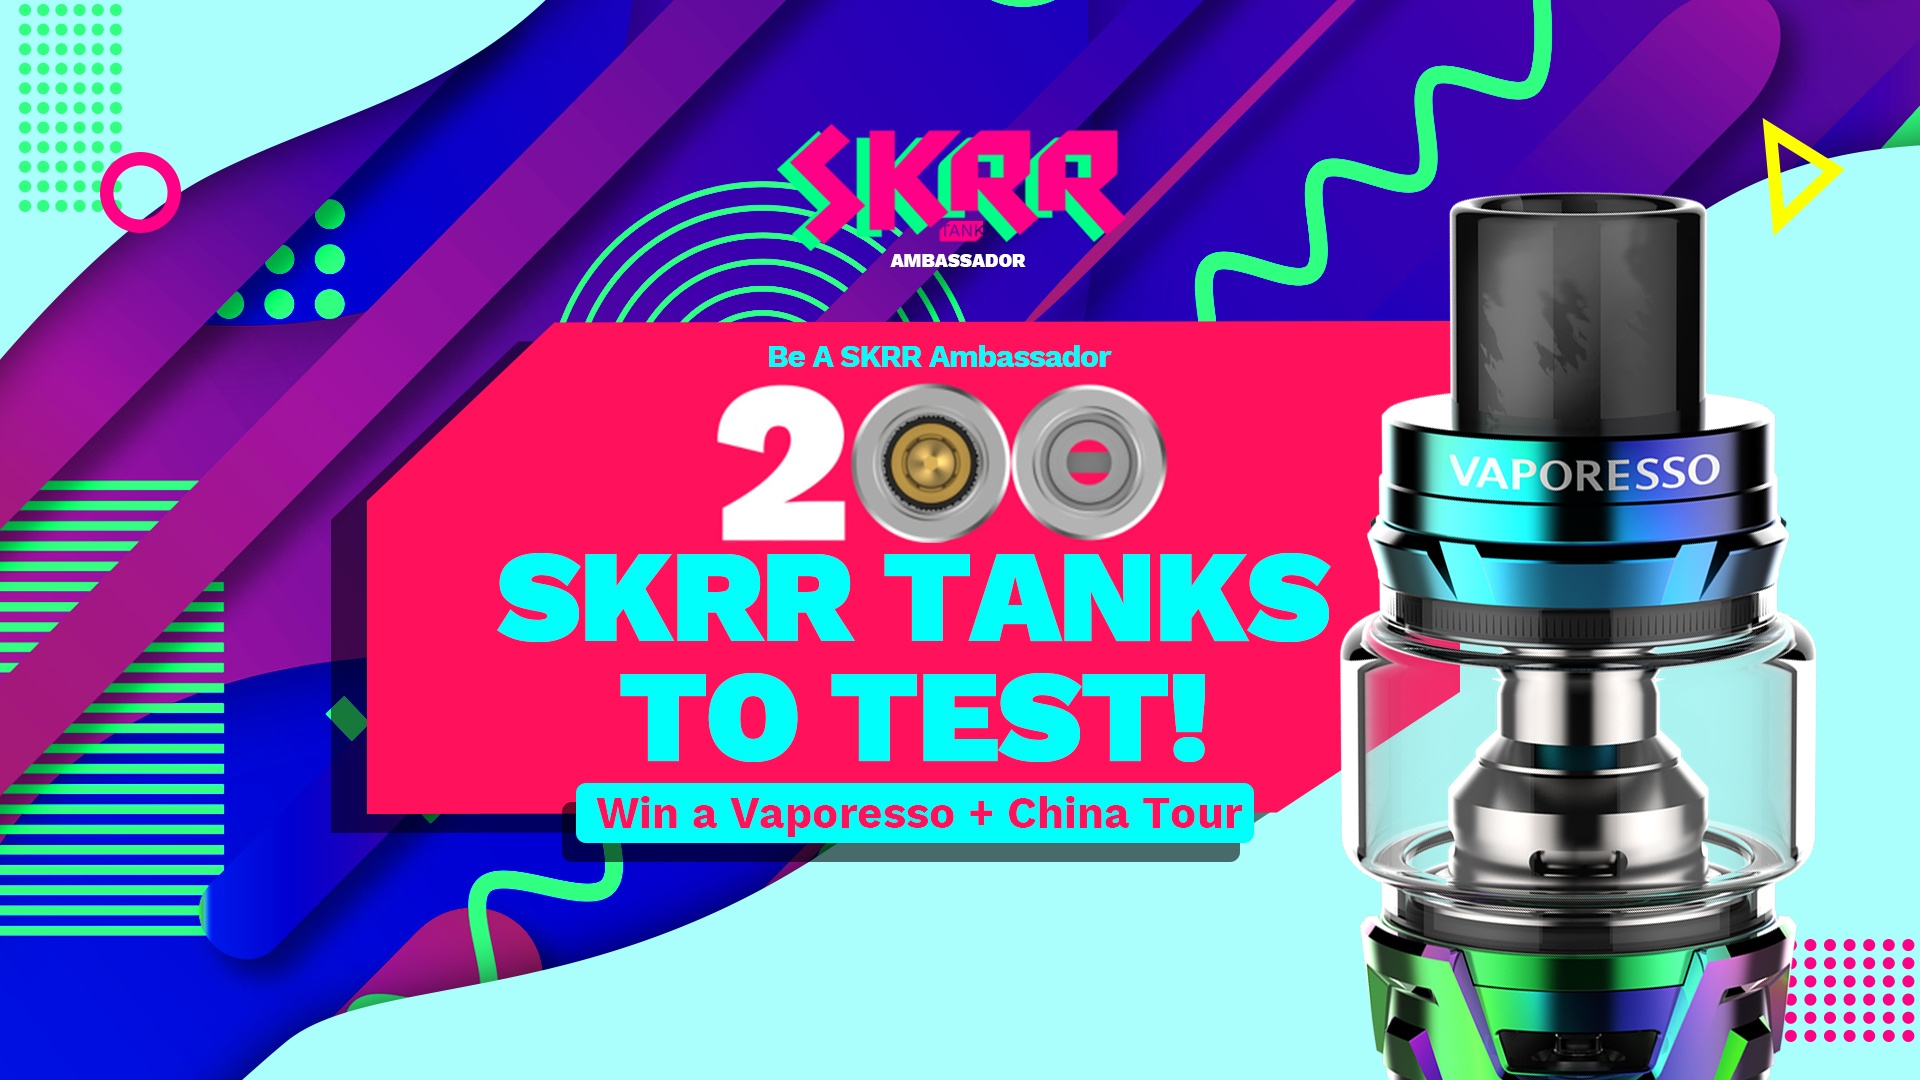 Skrr Tank Testers Contest